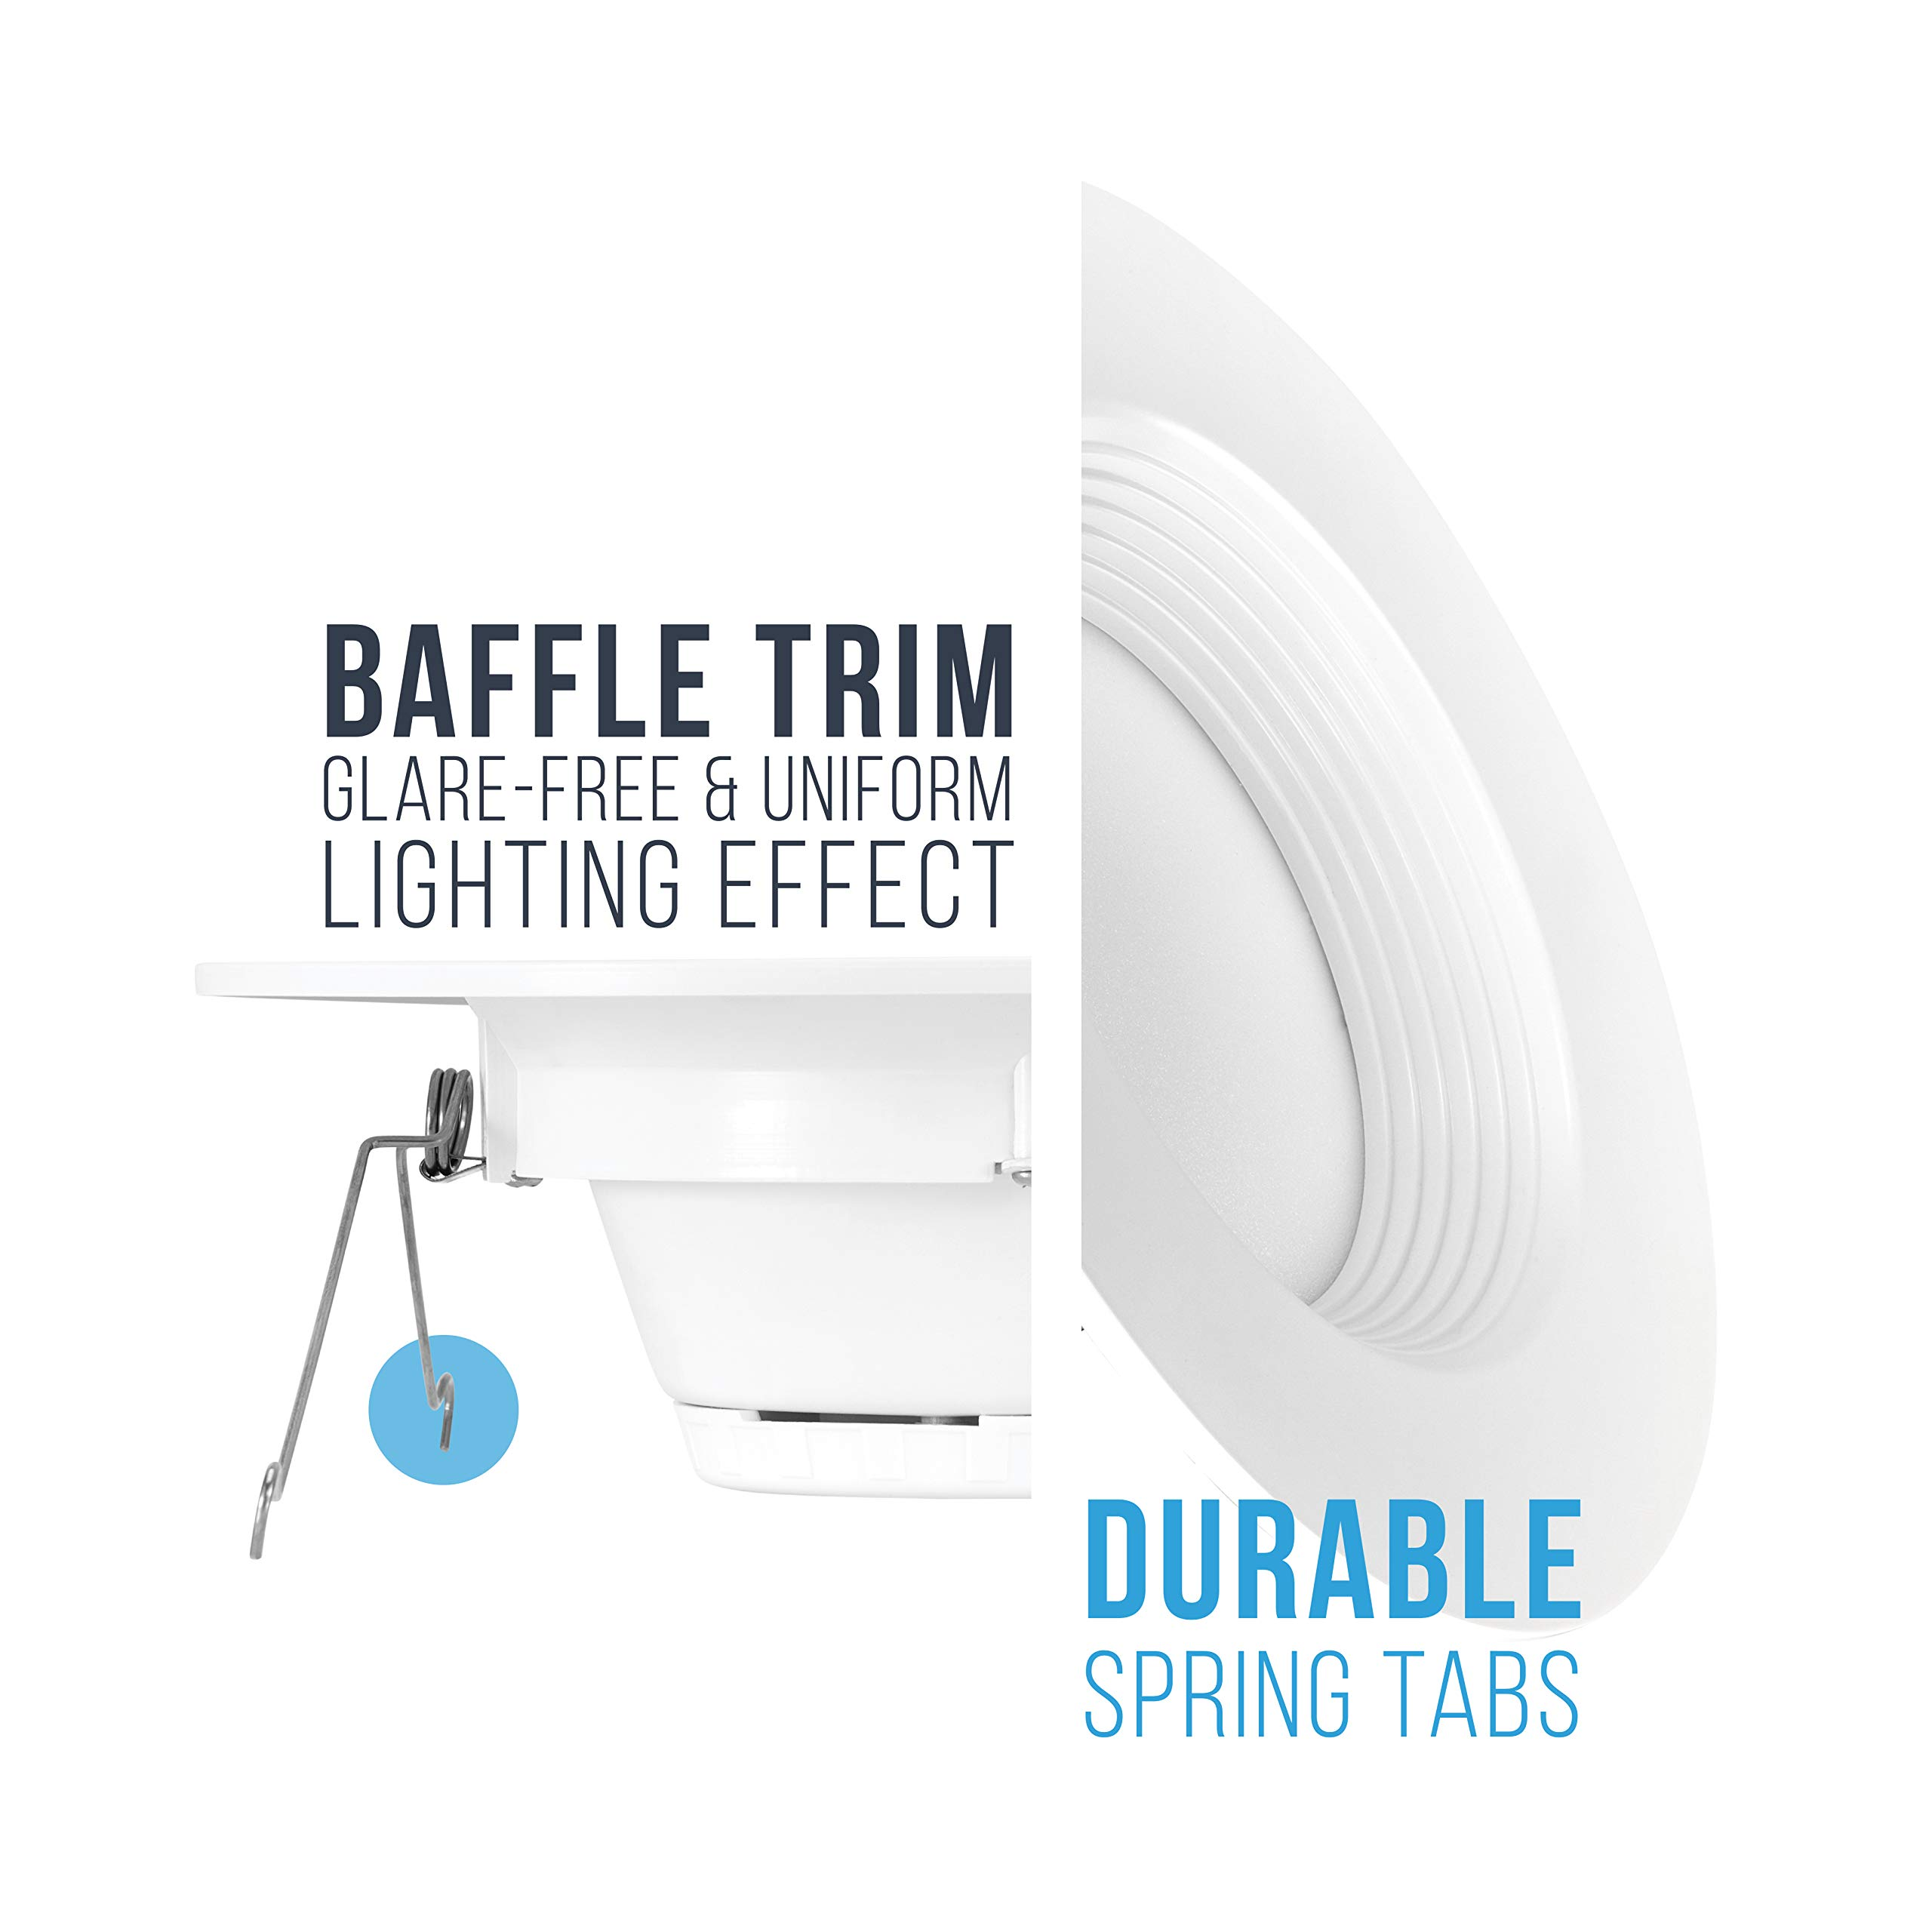 Parmida (12 Pack) 5/6 inch Dimmable LED Downlight, 12W (100W Replacement), Baffle Design, Retrofit Recessed Lighting, Can Light, LED Trim, 3000K (Soft White), 1000lm, Energy Star & ETL by Parmida LED Technologies (Image #7)